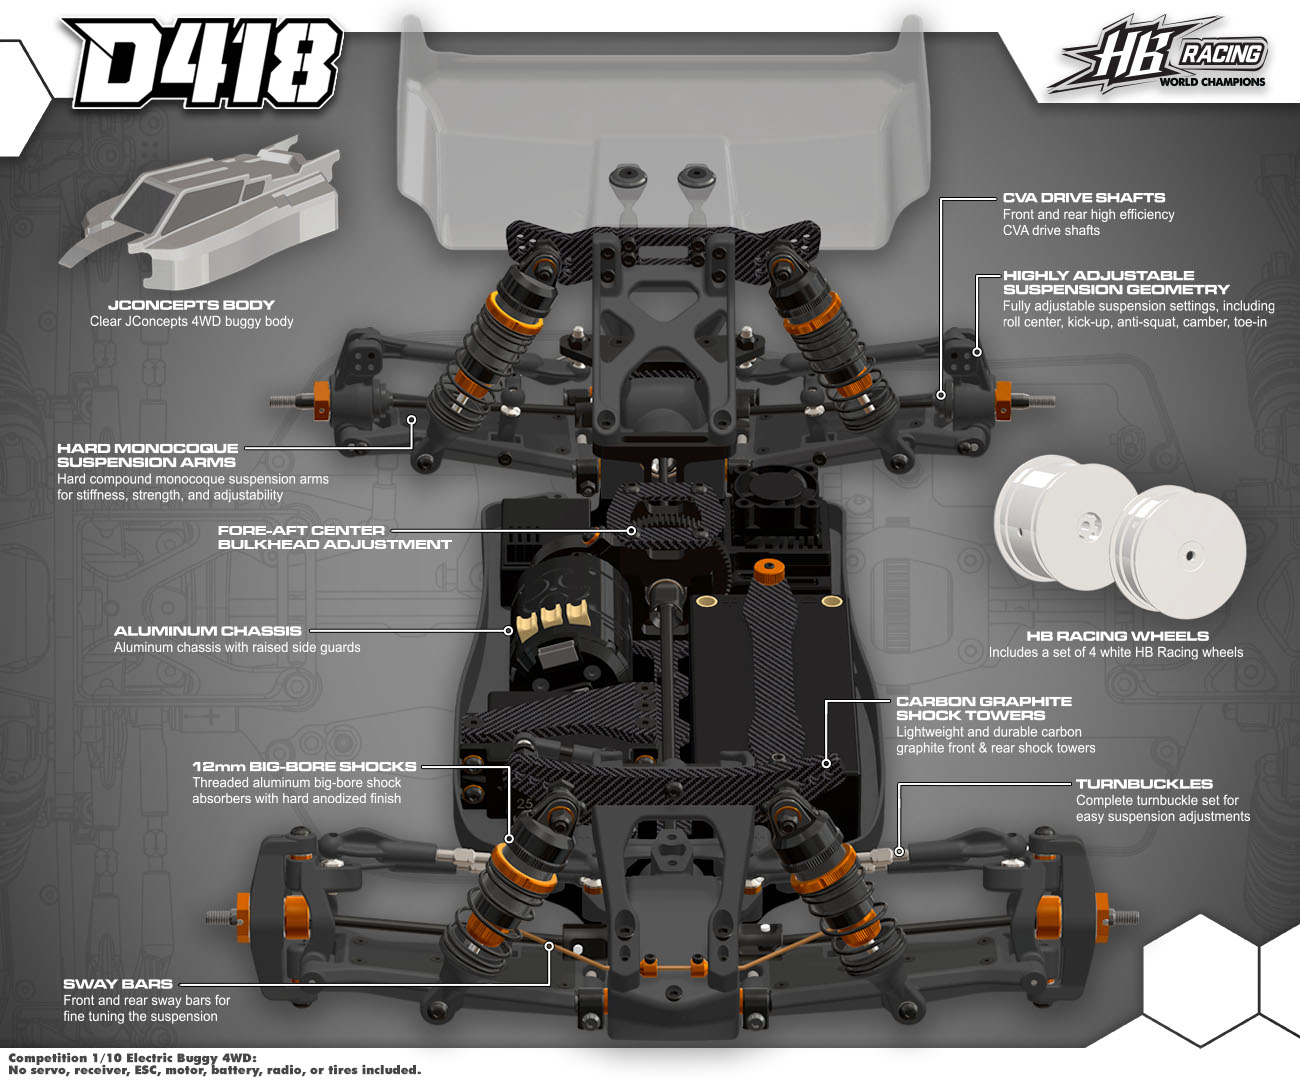 HB RACING D418 1/10 Competition Electric Buggy 4wd